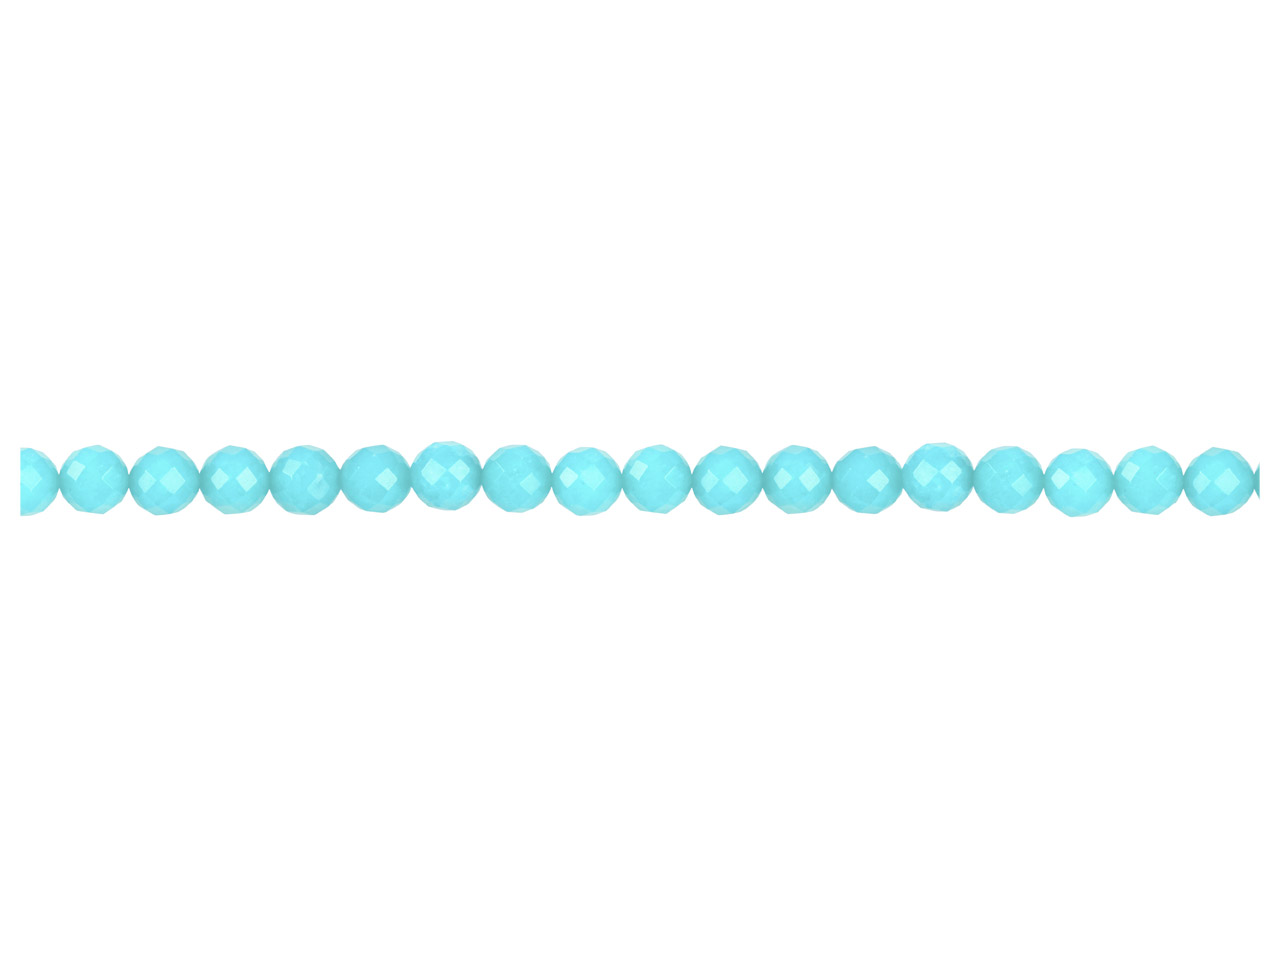 Dyed Aqua Jade Faceted Round       Precious Round Beads 8mm, 16